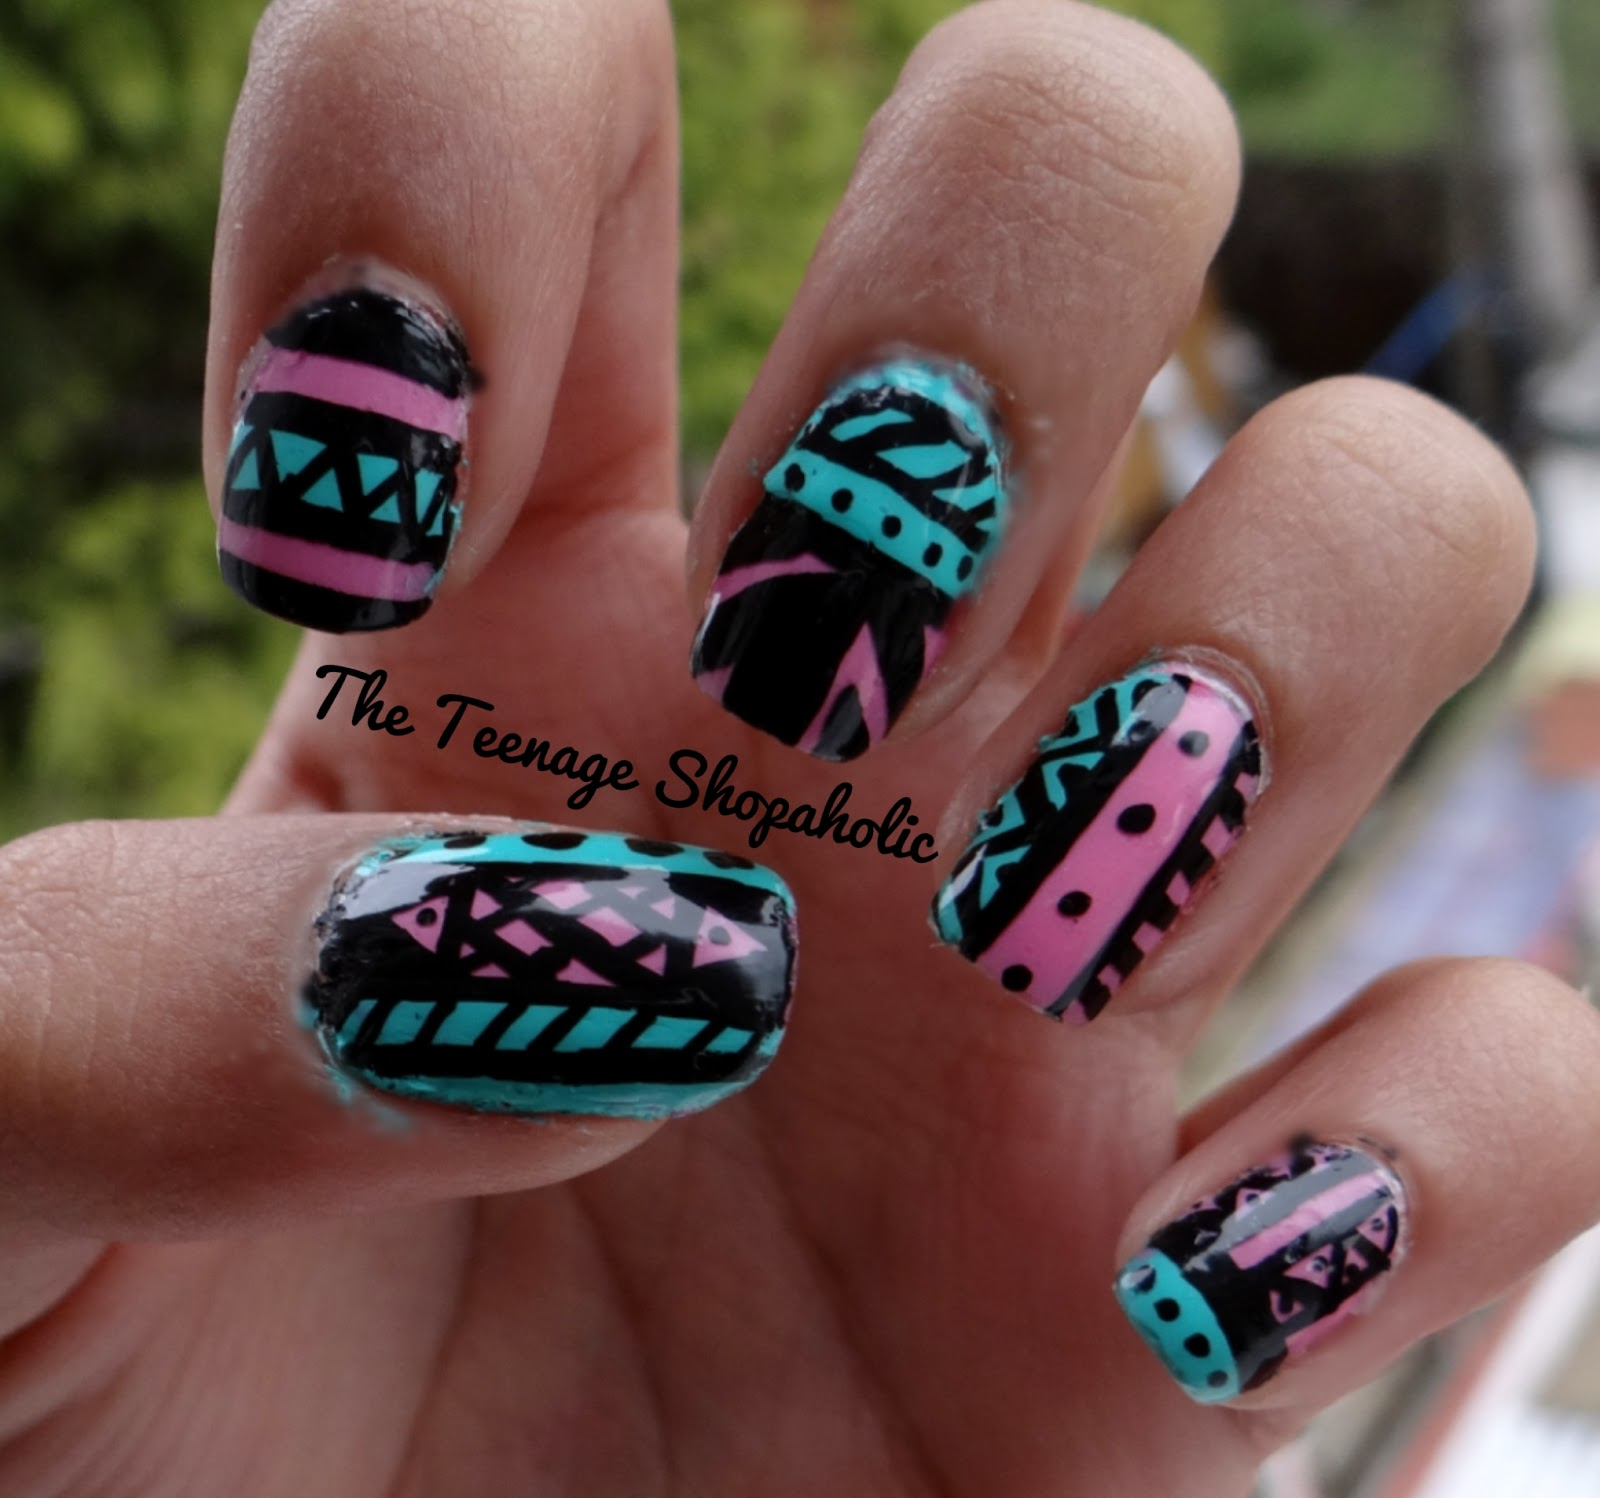 Easy tribal nail designs for beginners acrylic nails designs view images day nail art challenge tribal prinsesfo Gallery